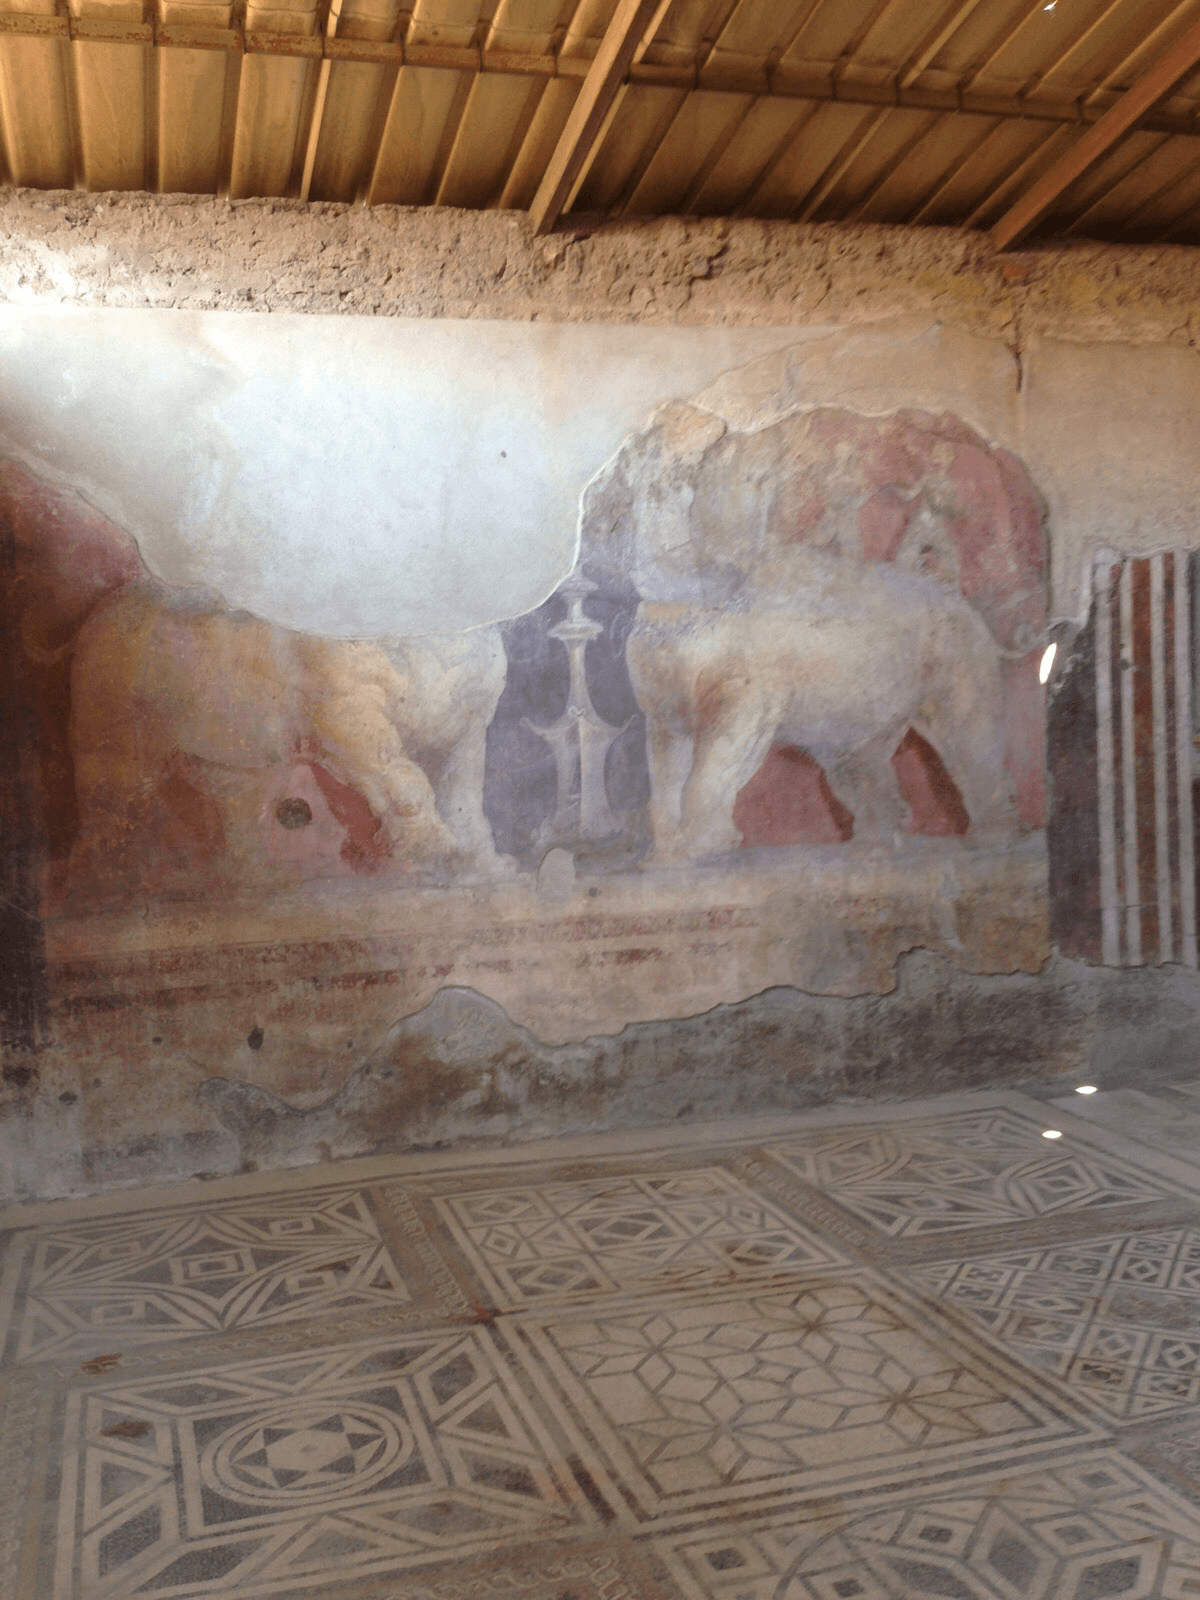 Mural on the wall of a building interior in Pompeii.